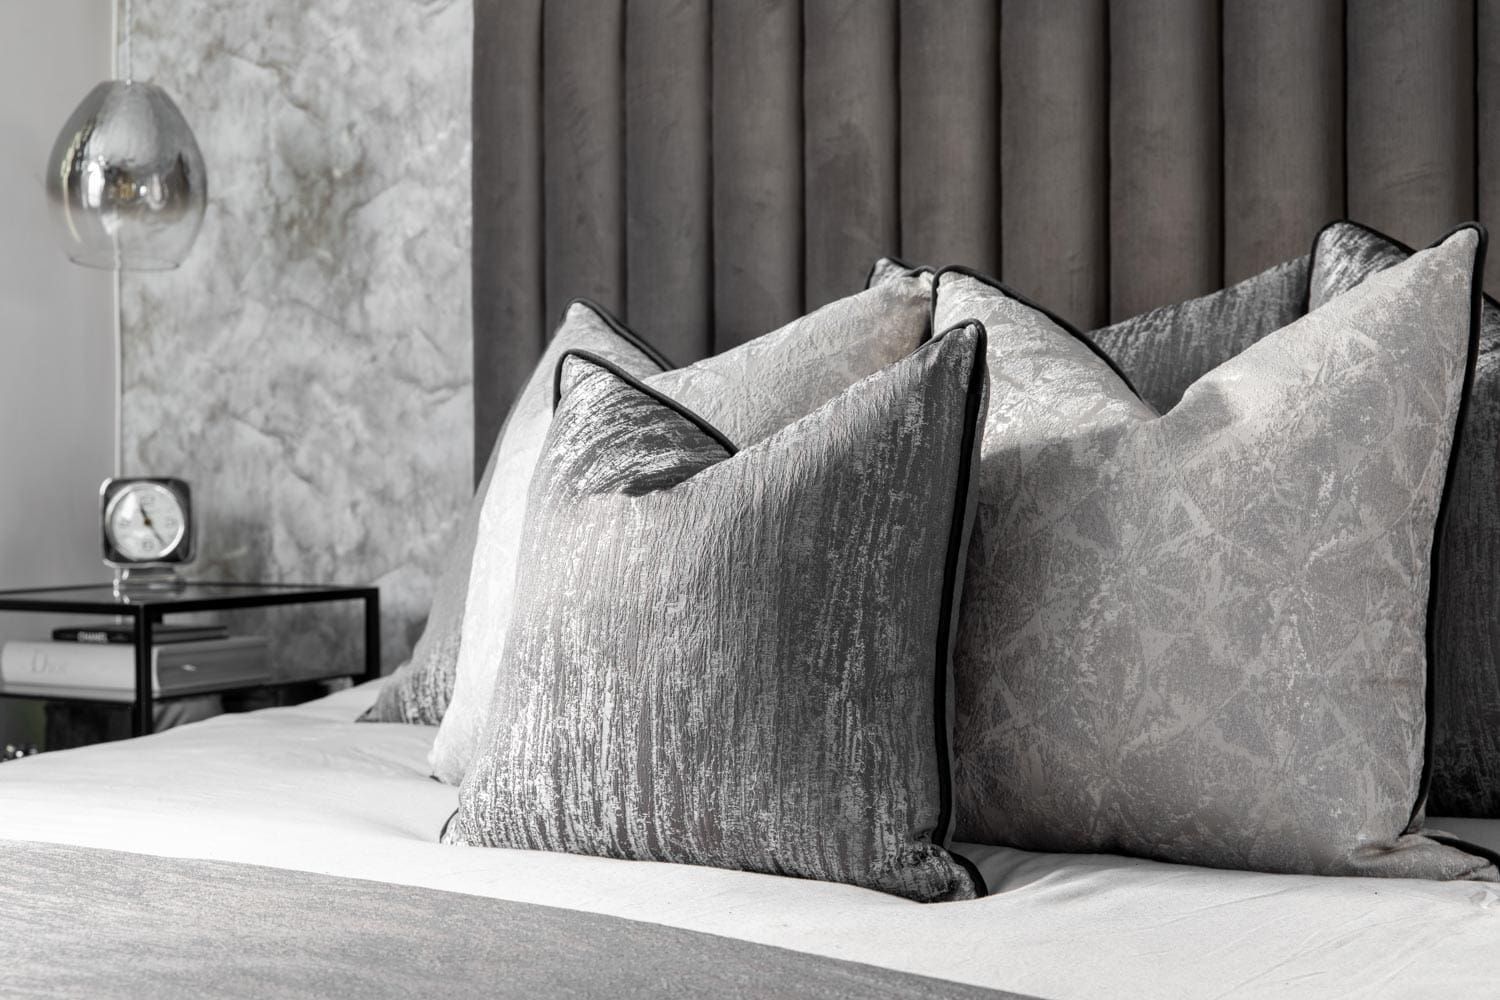 cushions on a bed for an interior photoshoots